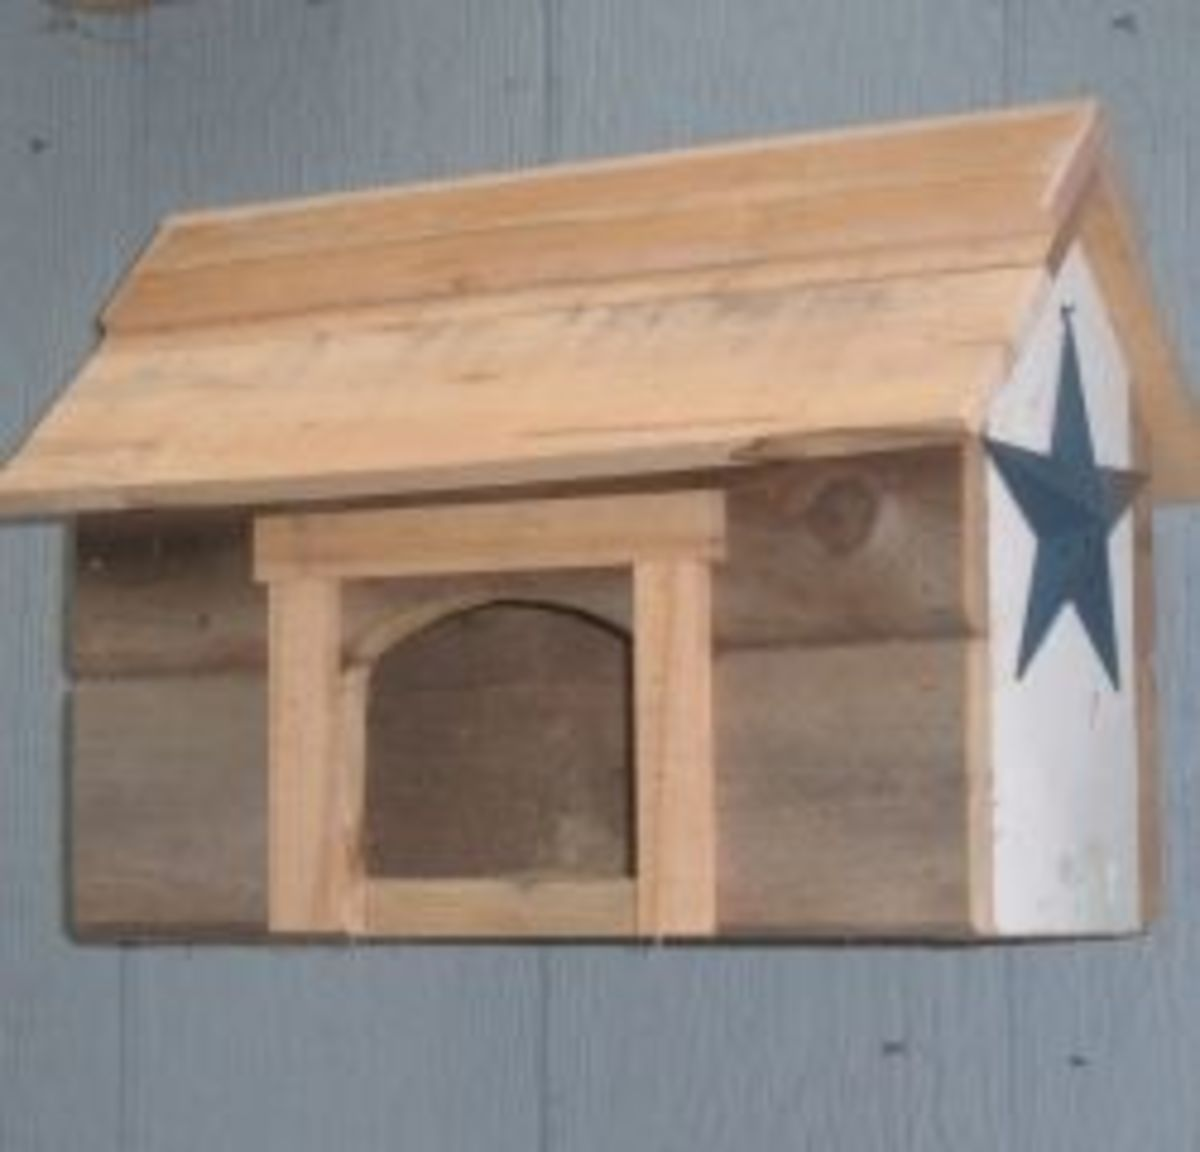 Birdhouse Ideas: Making Rustic Birdhouses from Salvaged Wood, Reclaimed Lumber and Old Pallets